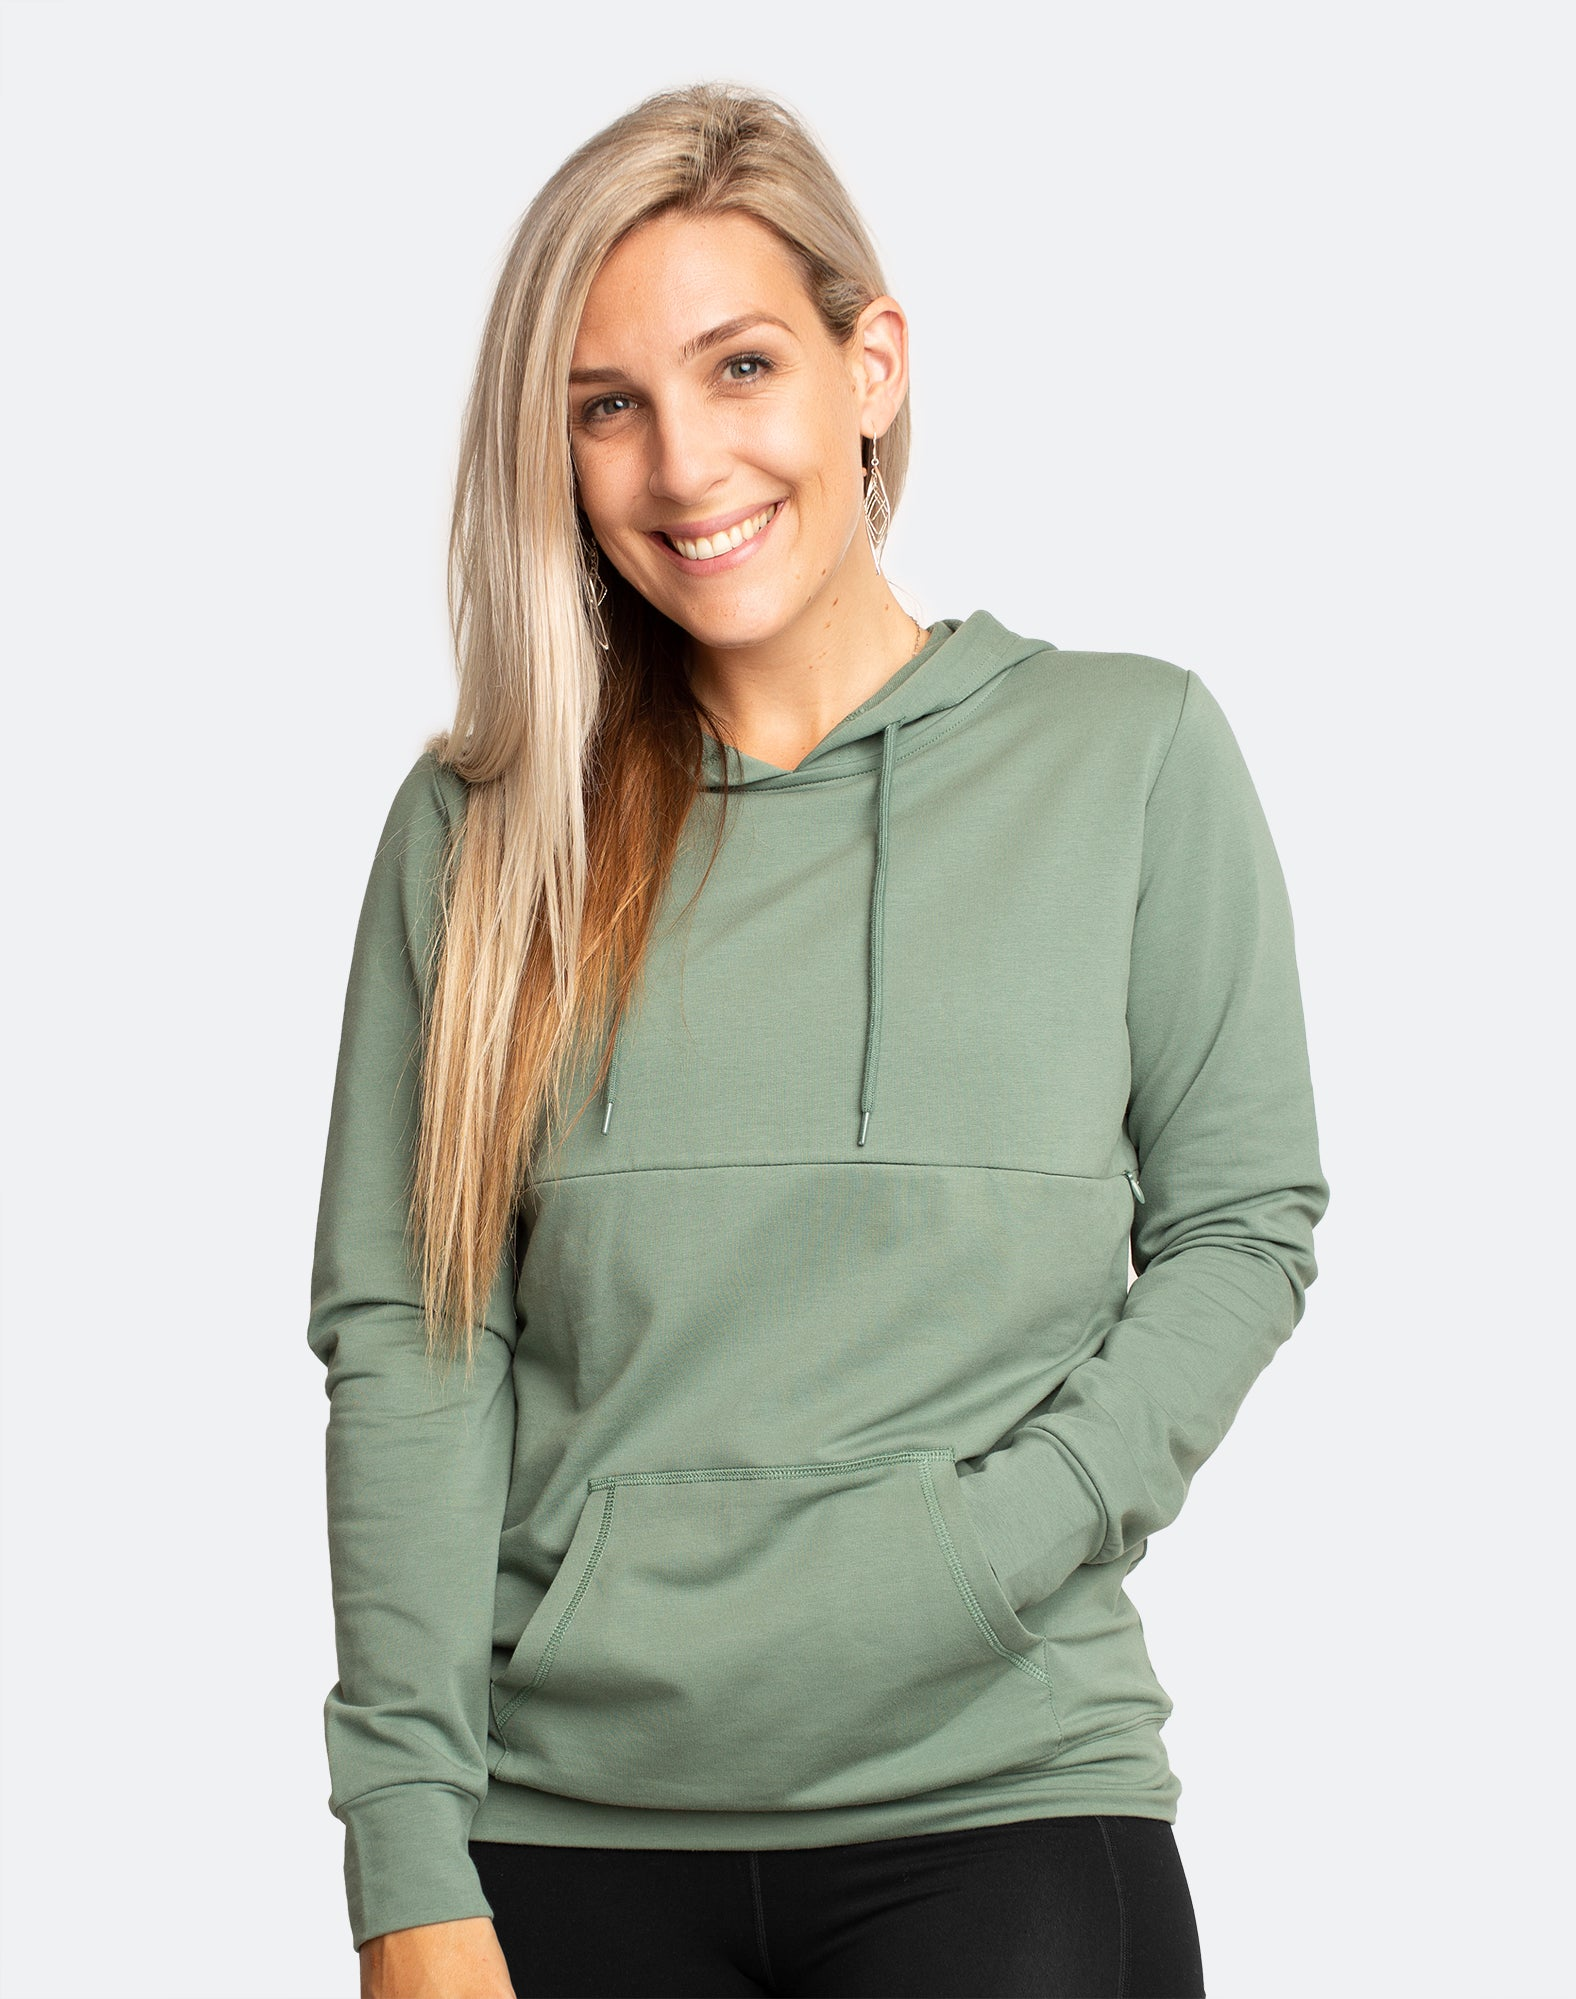 side view of an active mother wearing a khaki breastfeeding hoodie